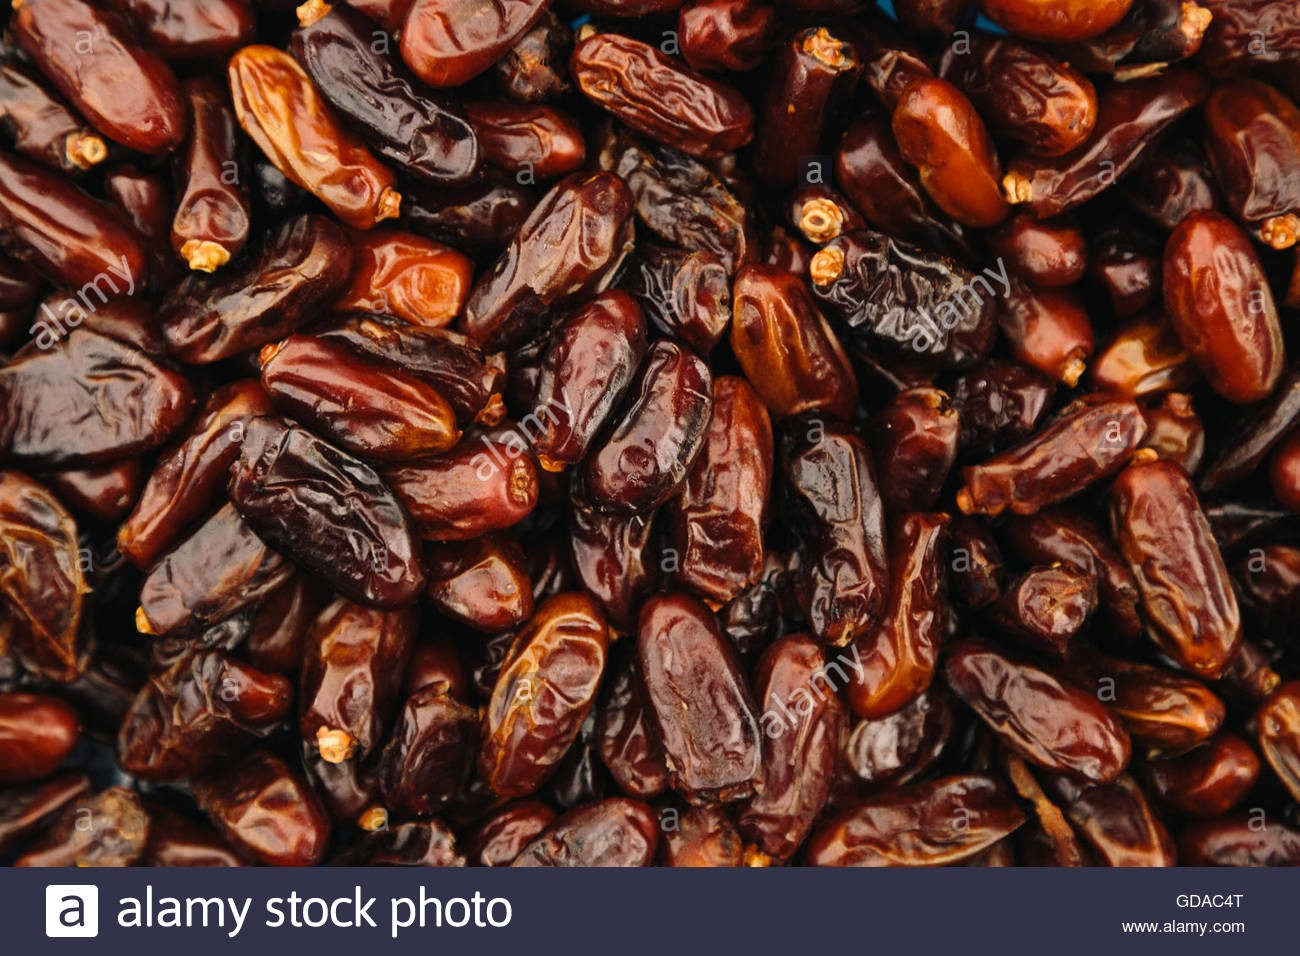 Date palm as background. Health food concept - Stock Image